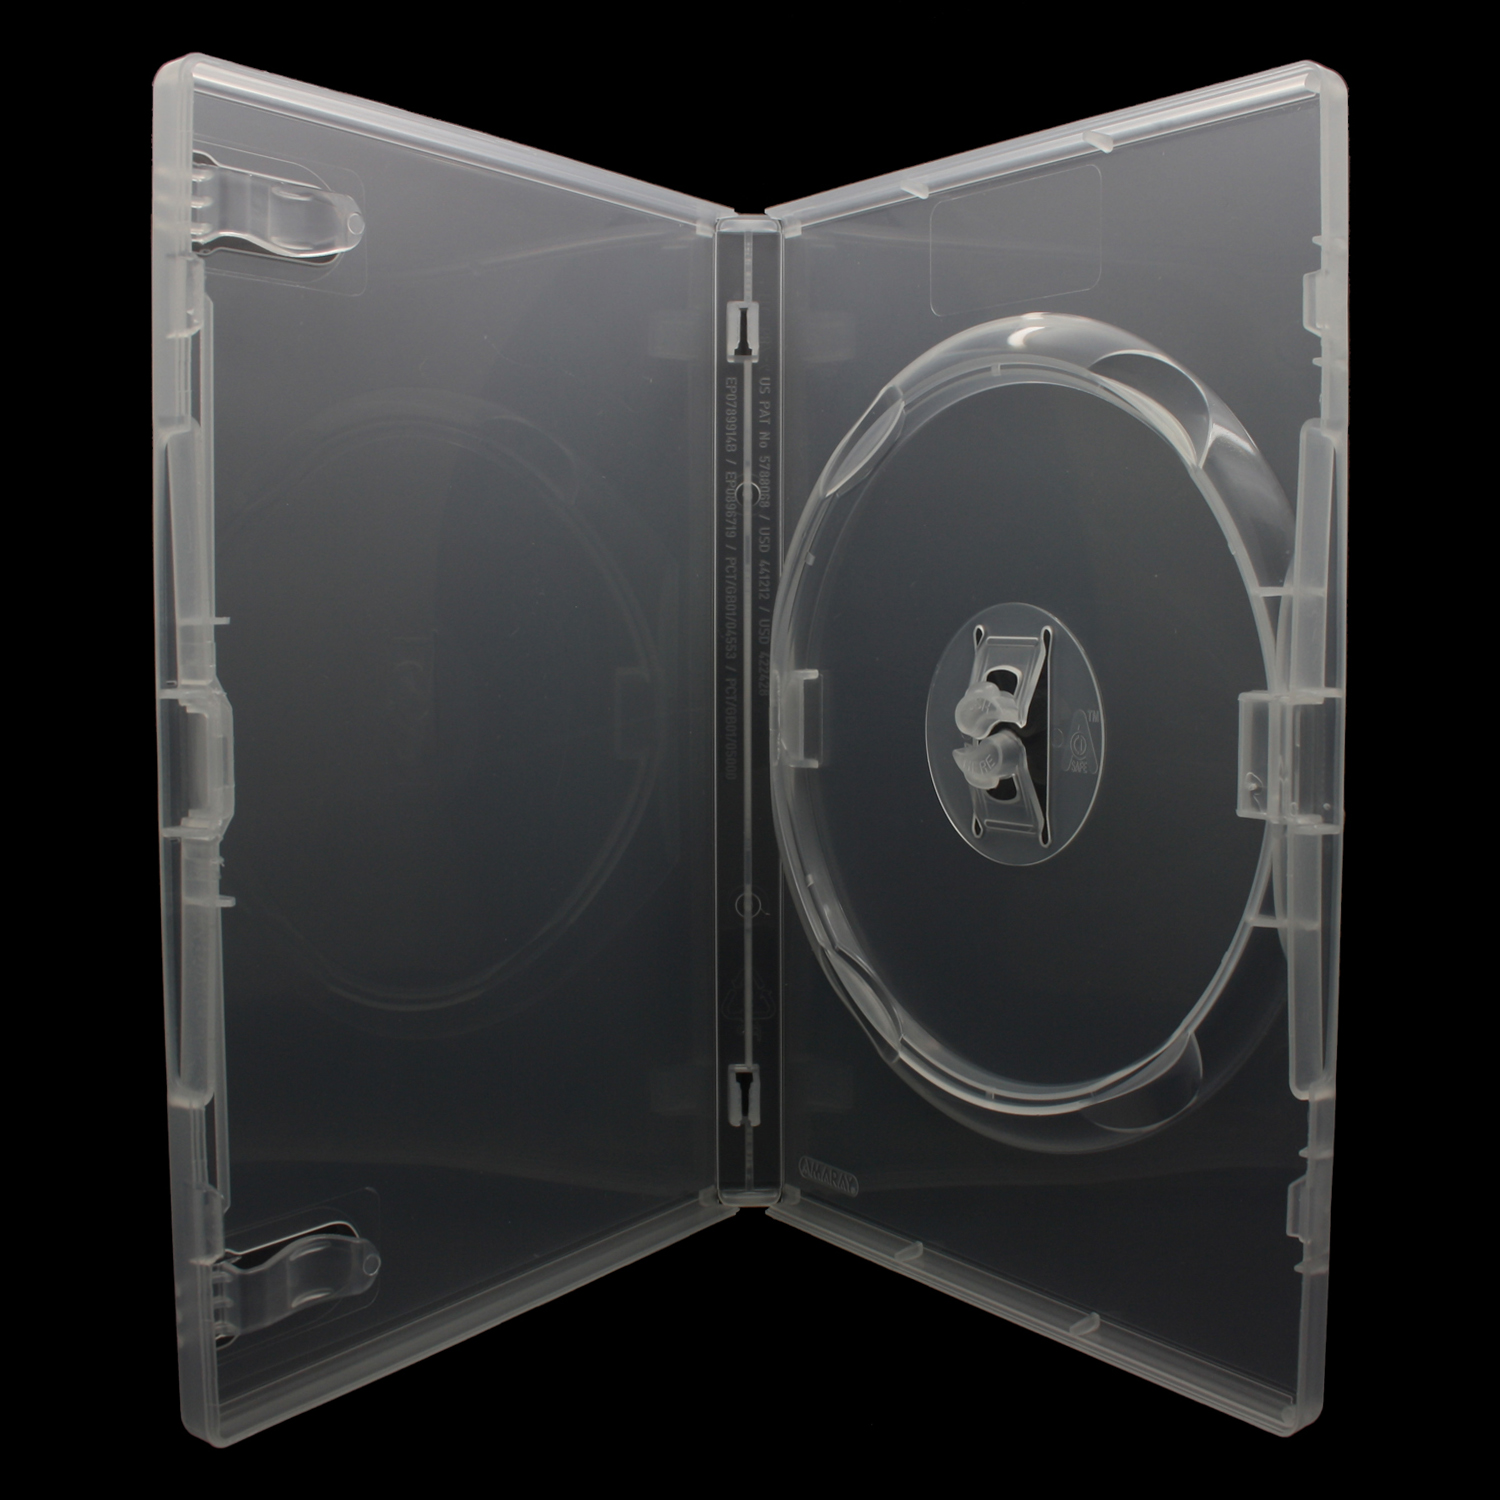 50 x AMARAY DVD Hüllen für 1 CD / DVD / Blu-Ray [14mm] Transparent